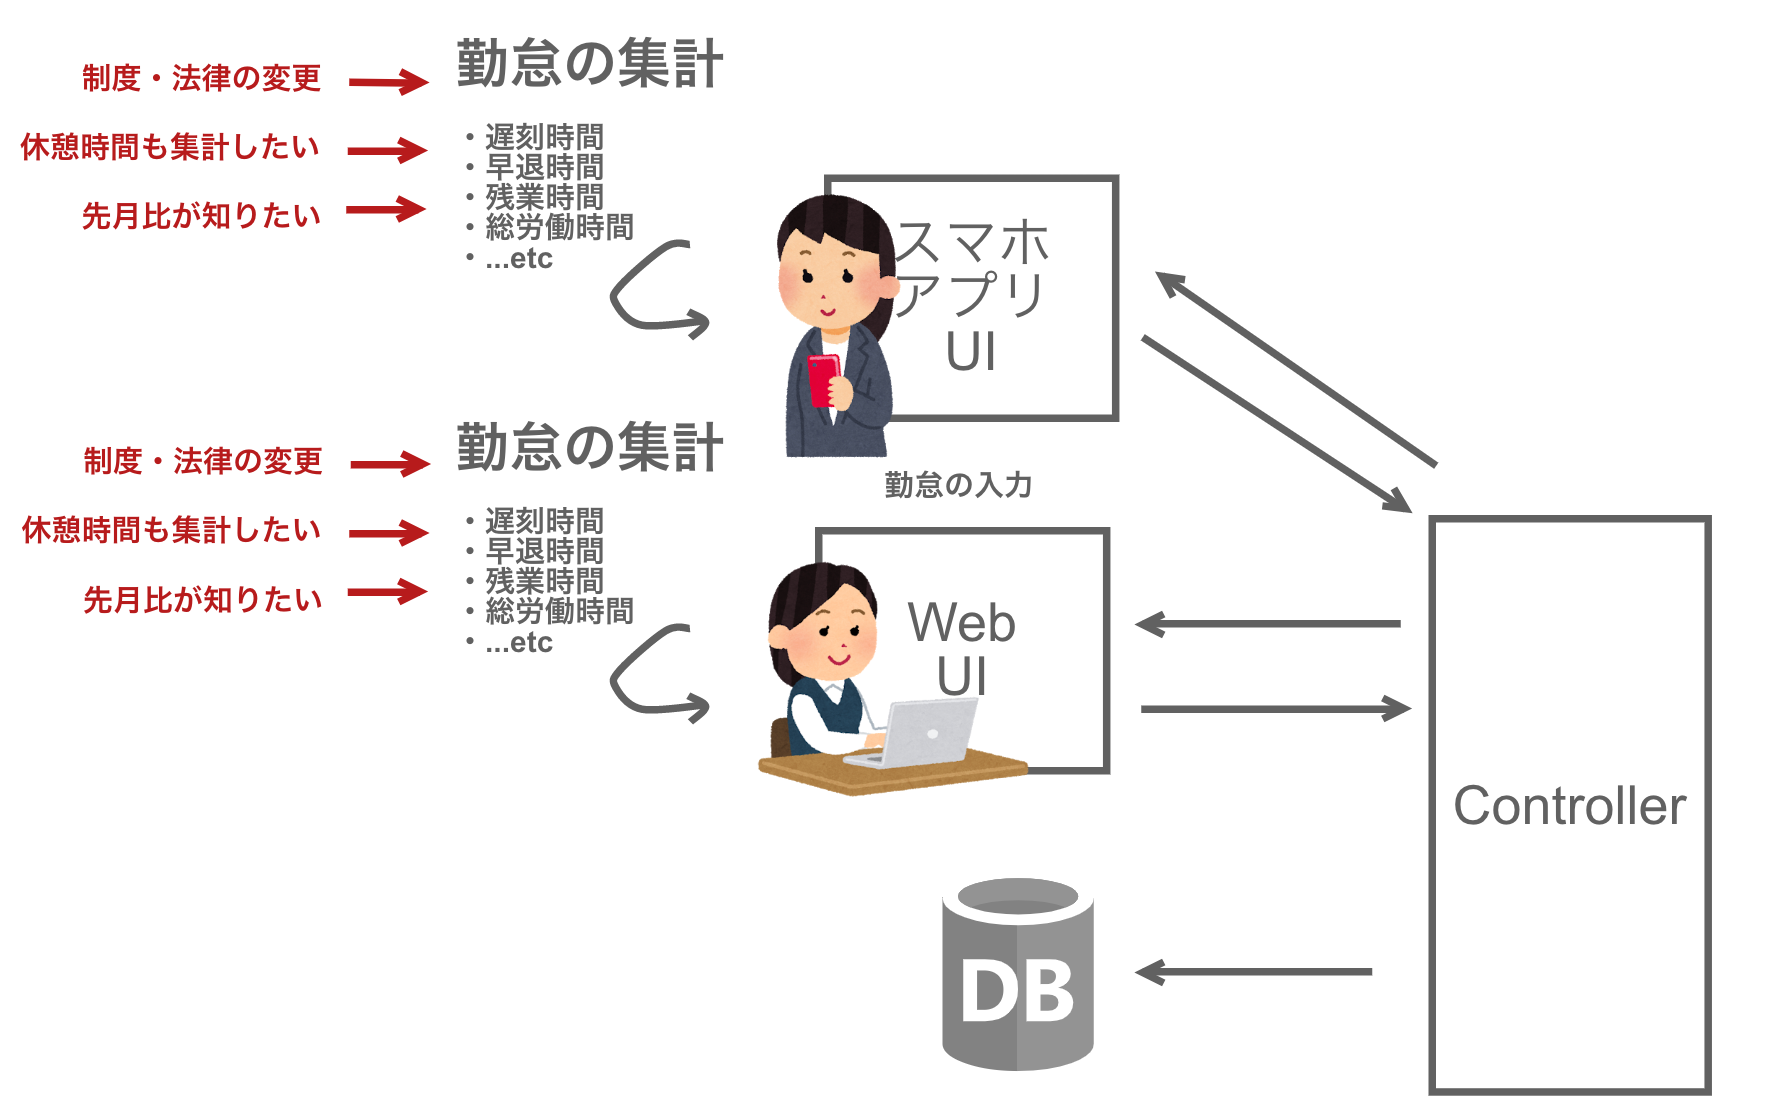 Untitled New Diagram   Cacoo (12).png